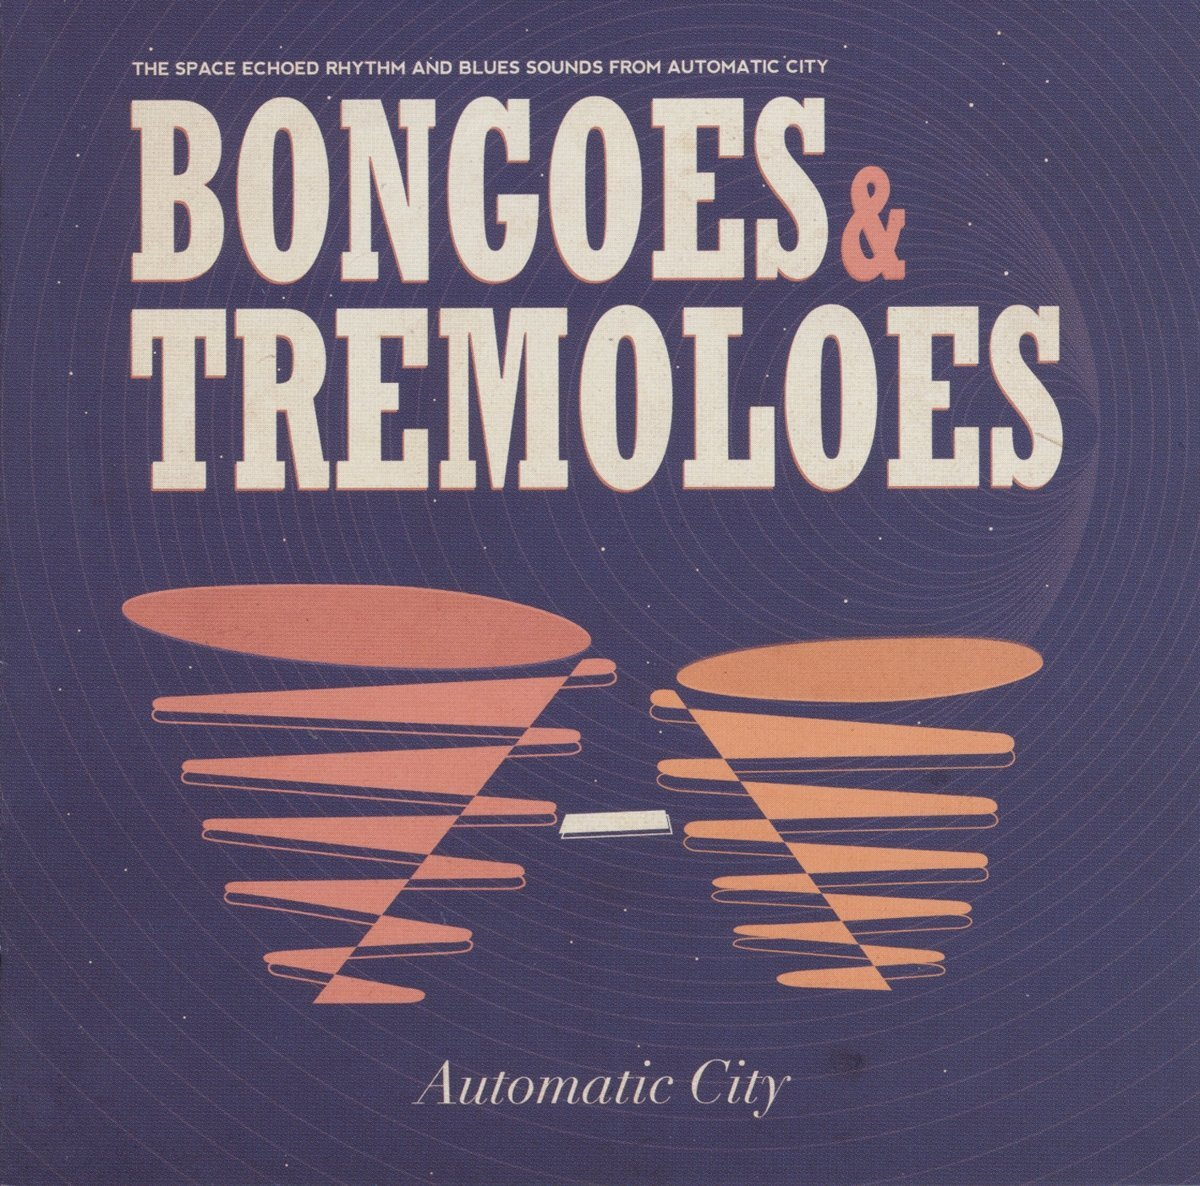 Automatic City - Bongoes & Tremeloes (With CD)